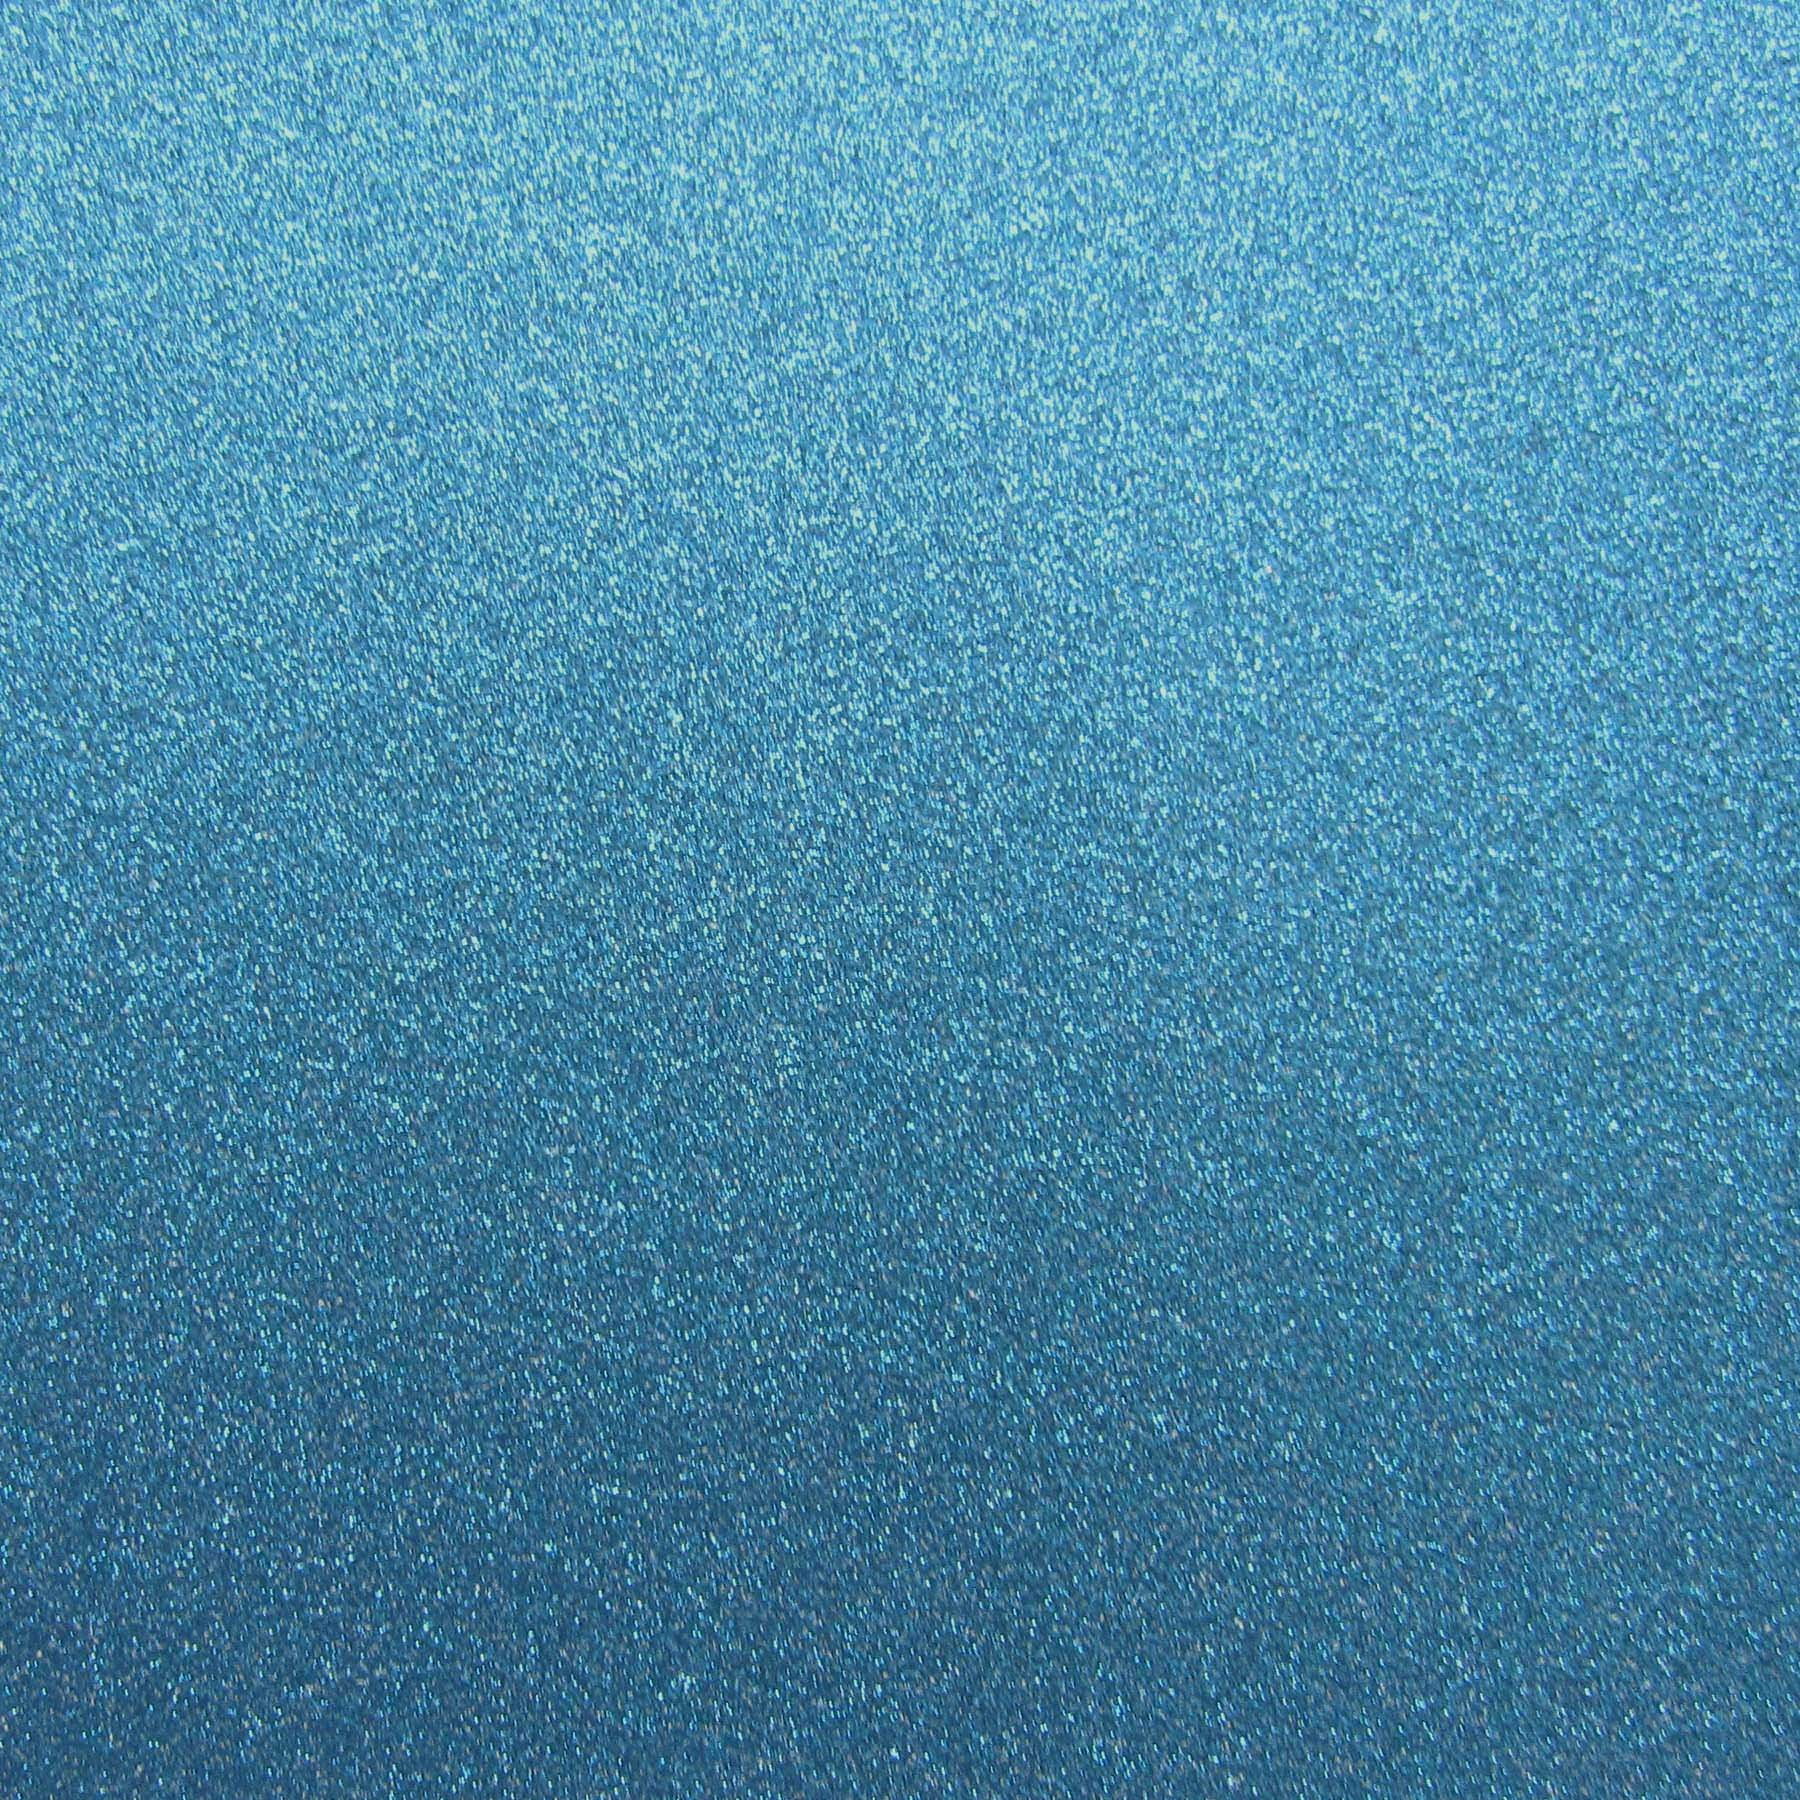 Best Creation 12-Inch by 12-Inch Glitter Cardstock, Peacock Blue